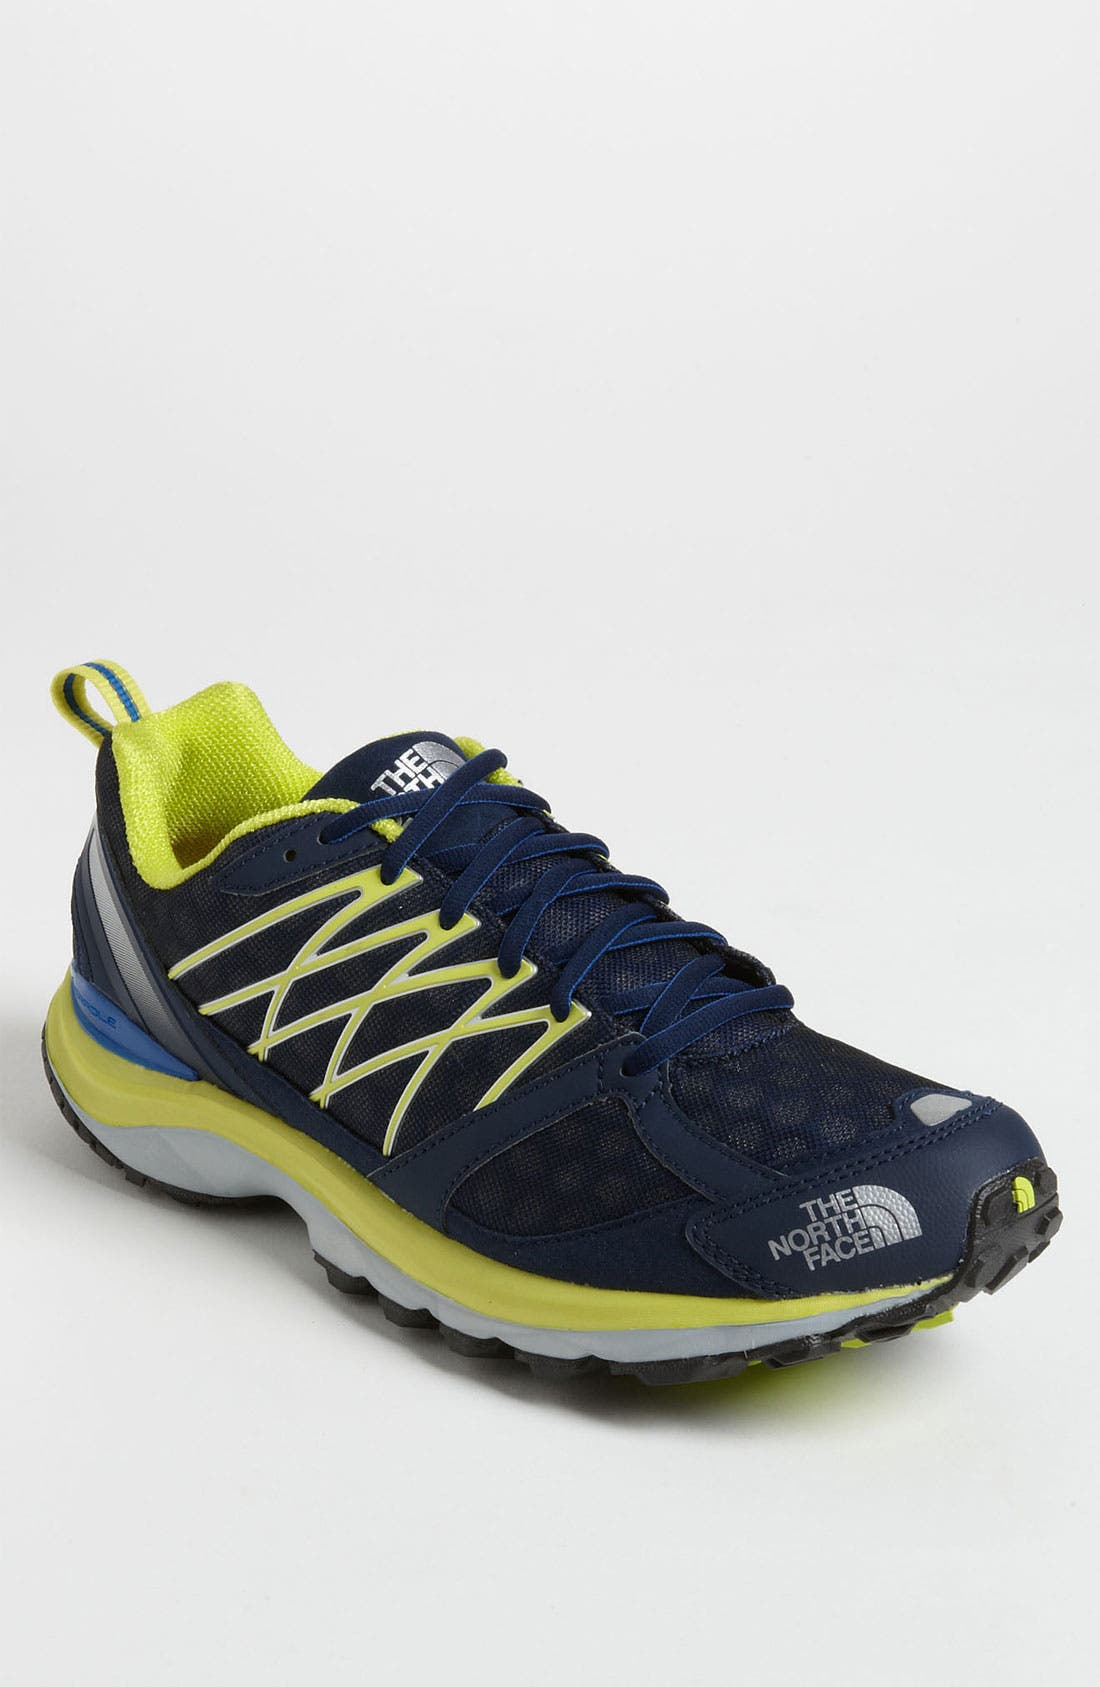 Main Image - The North Face 'Double-Track Guide' Trail Running Shoe (Men)